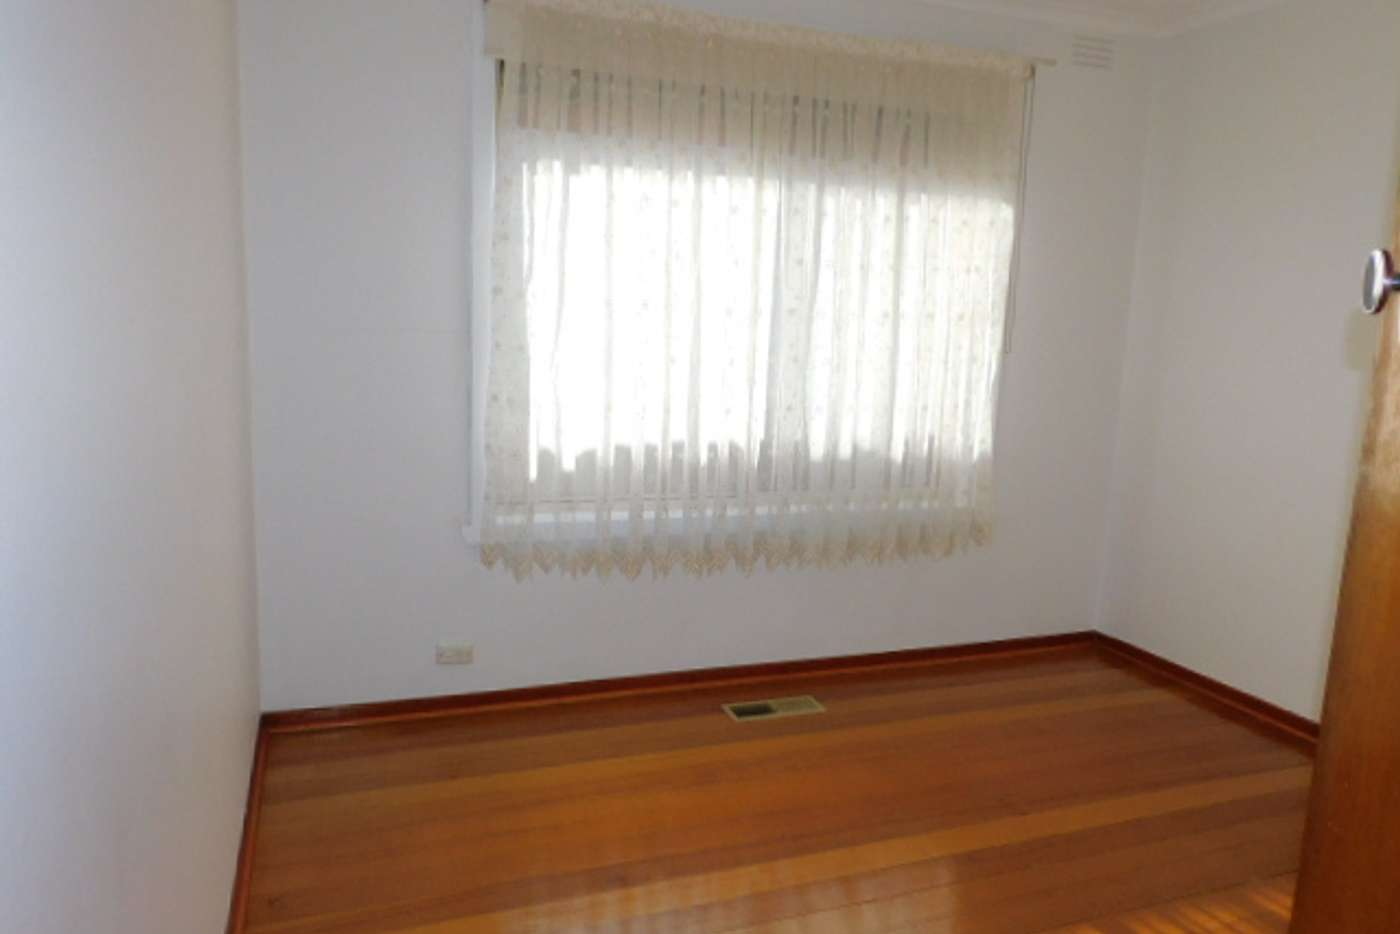 Seventh view of Homely unit listing, 132 Outlook Dr, Glenroy VIC 3046